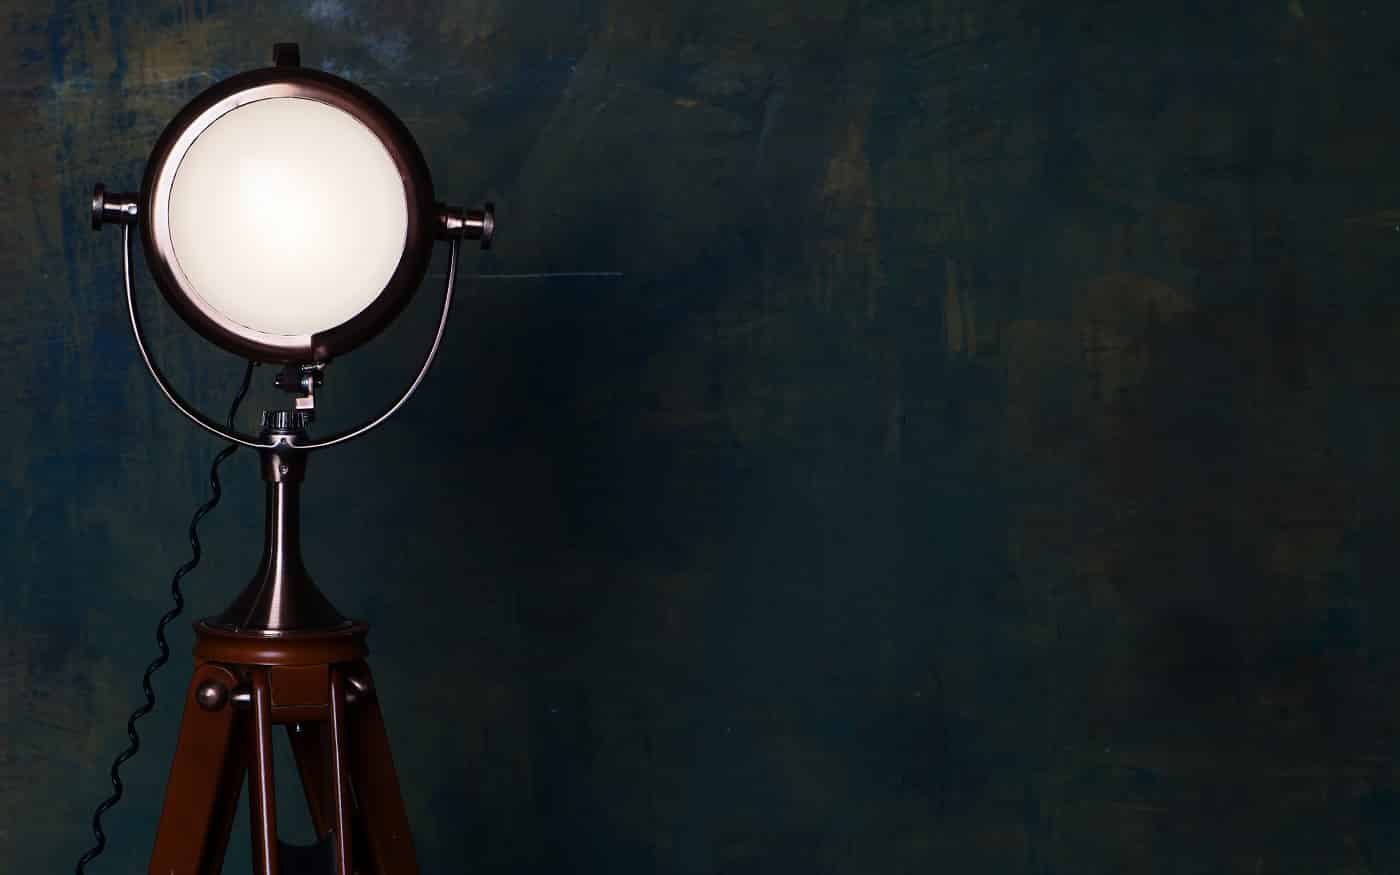 Vintage floor lamp over old wall